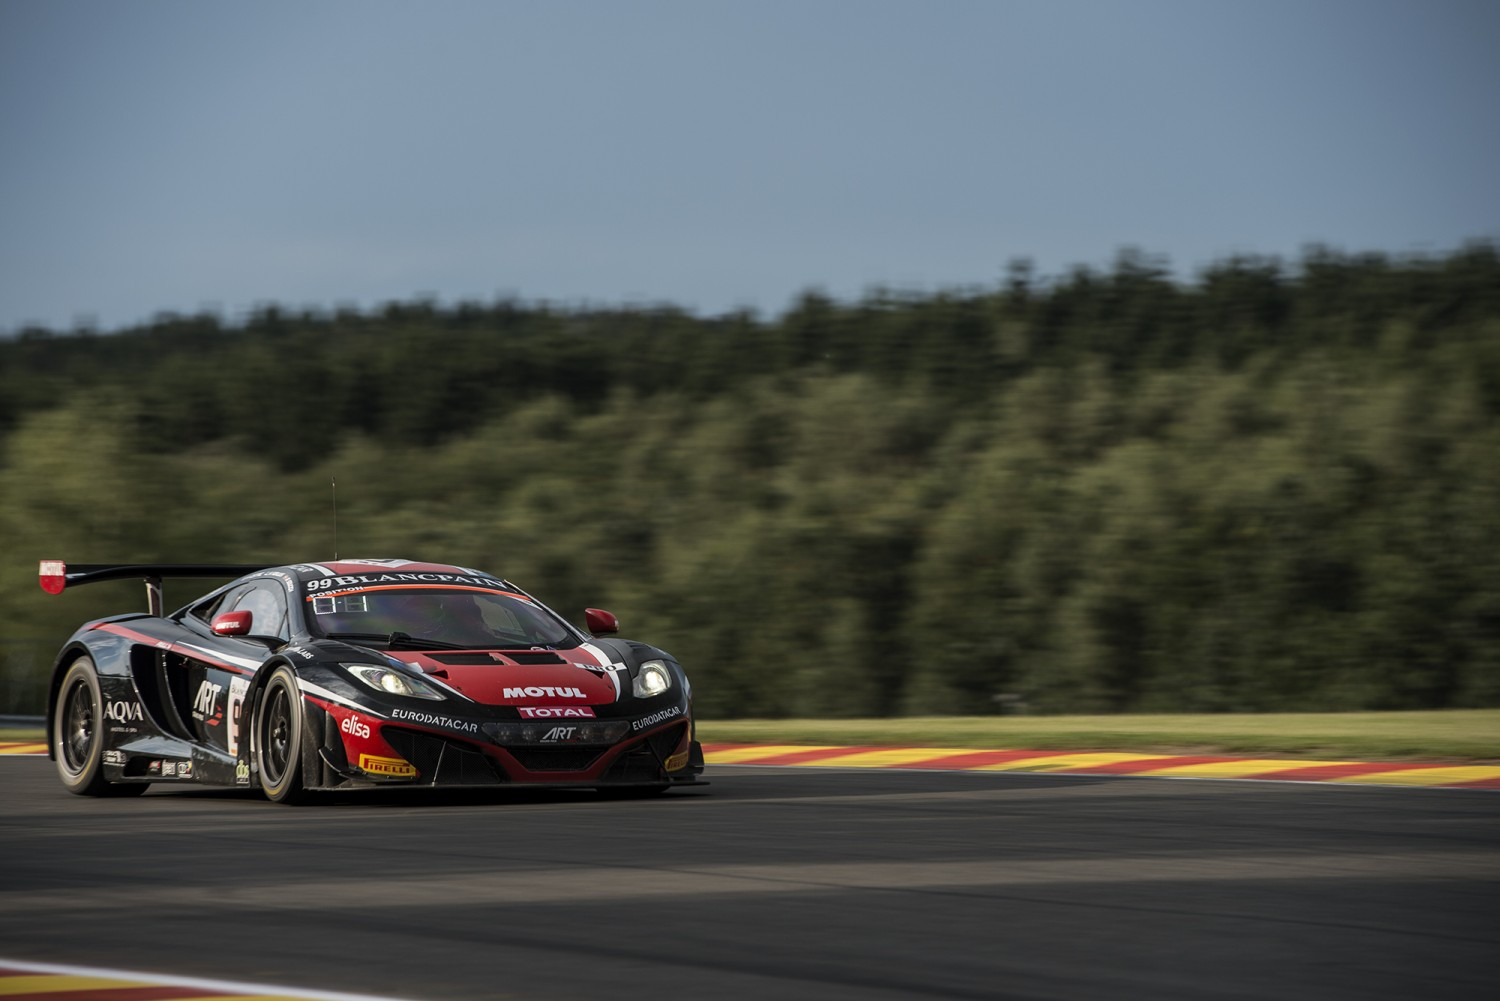 Total 24 Hours of Spa - ART Grand Prix McLaren quickest in pre-qualifying